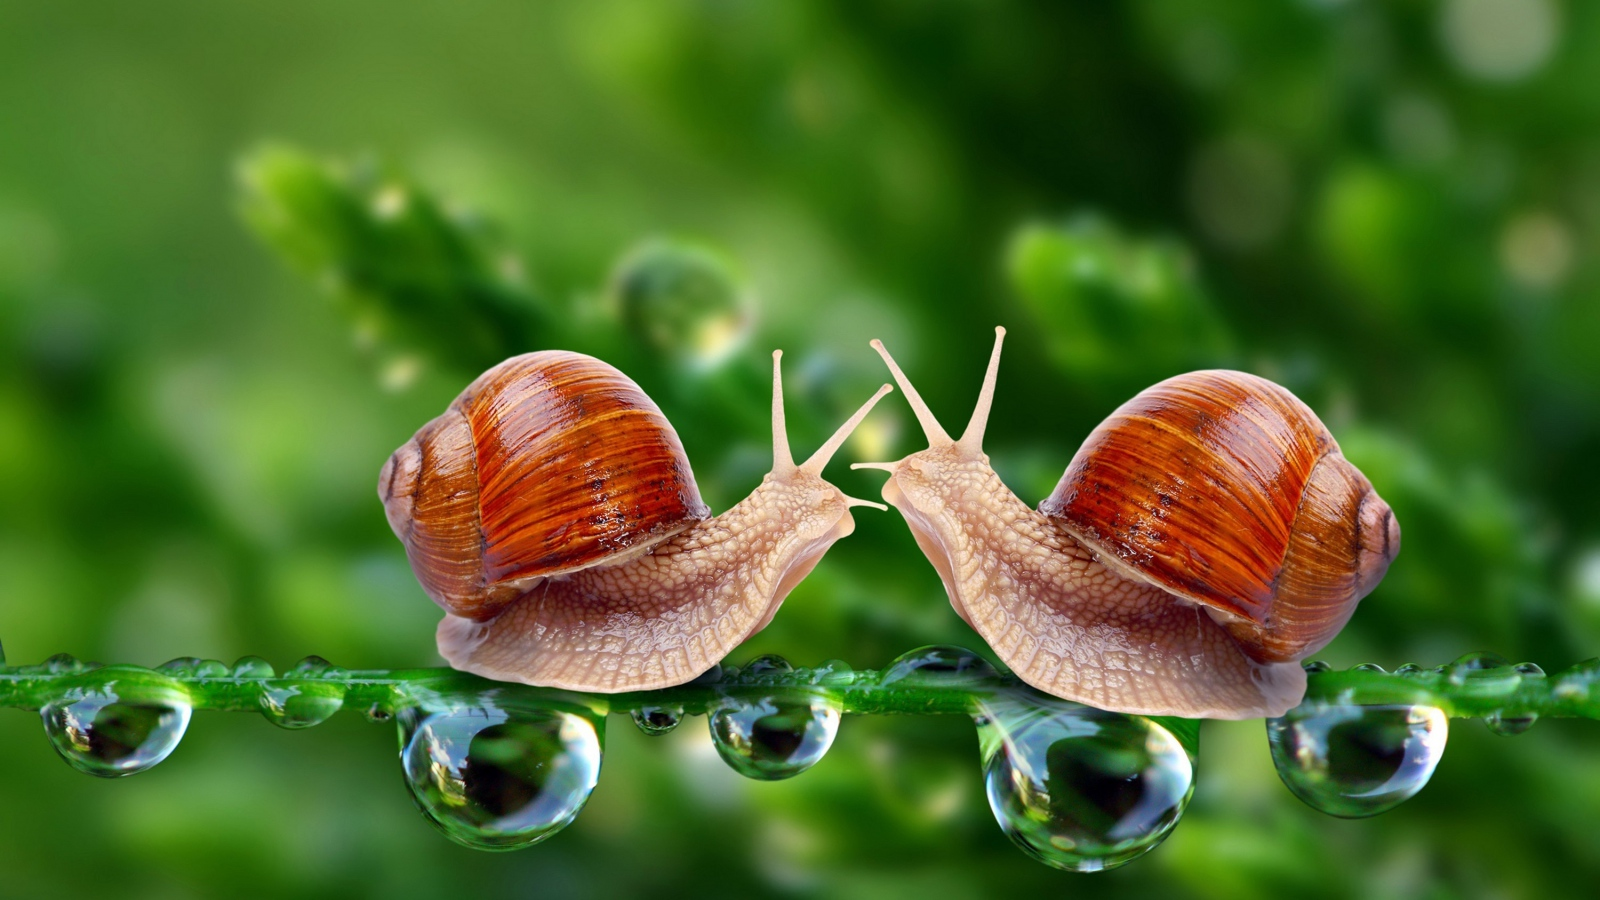 snails-grass-shell-1600x900